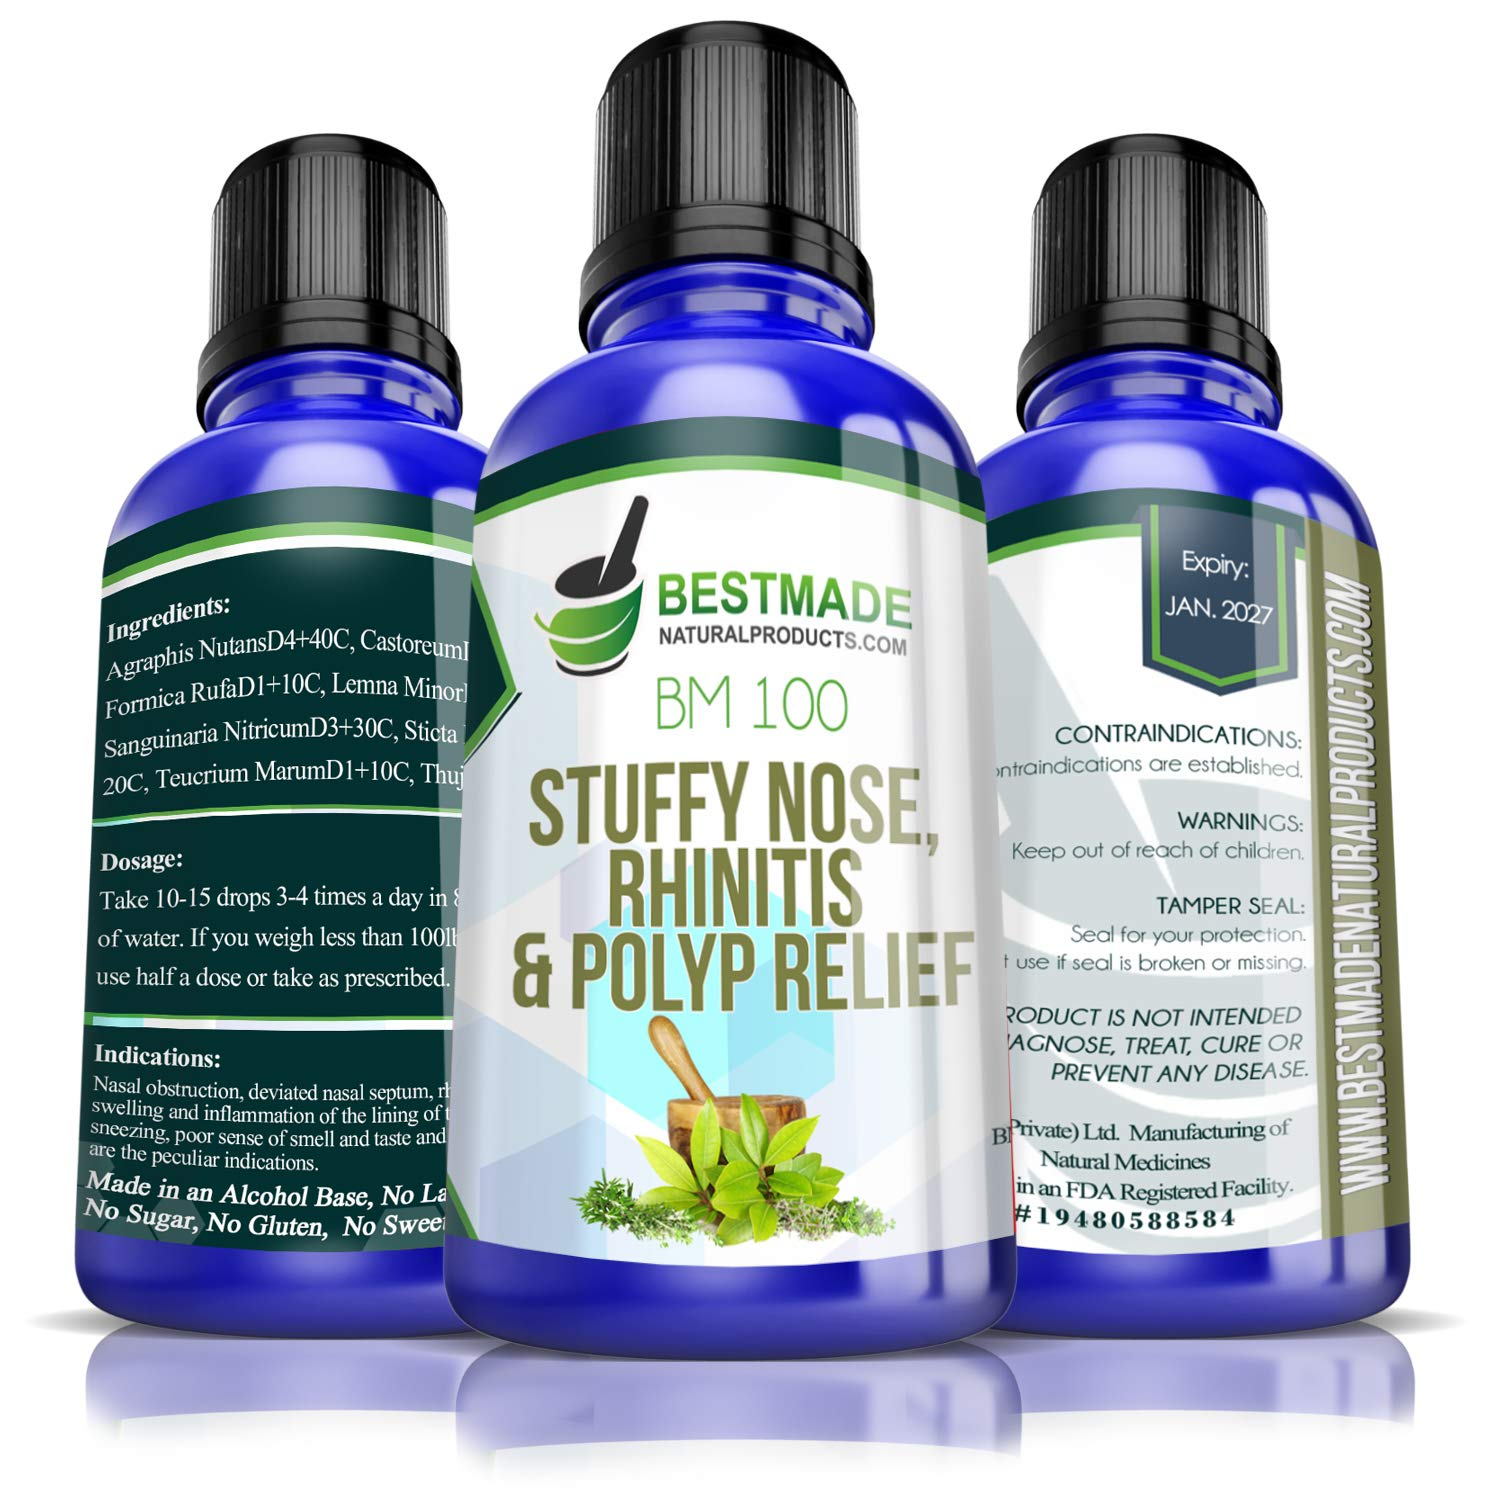 Stuffy Nose Relief & Rhinitis & Nasal Polyps BM100, Use for Sinus Pain, Congestion, Runny Nose and Seasonal Allergies Helps to Reduce Inflammation That can Cause Polyps